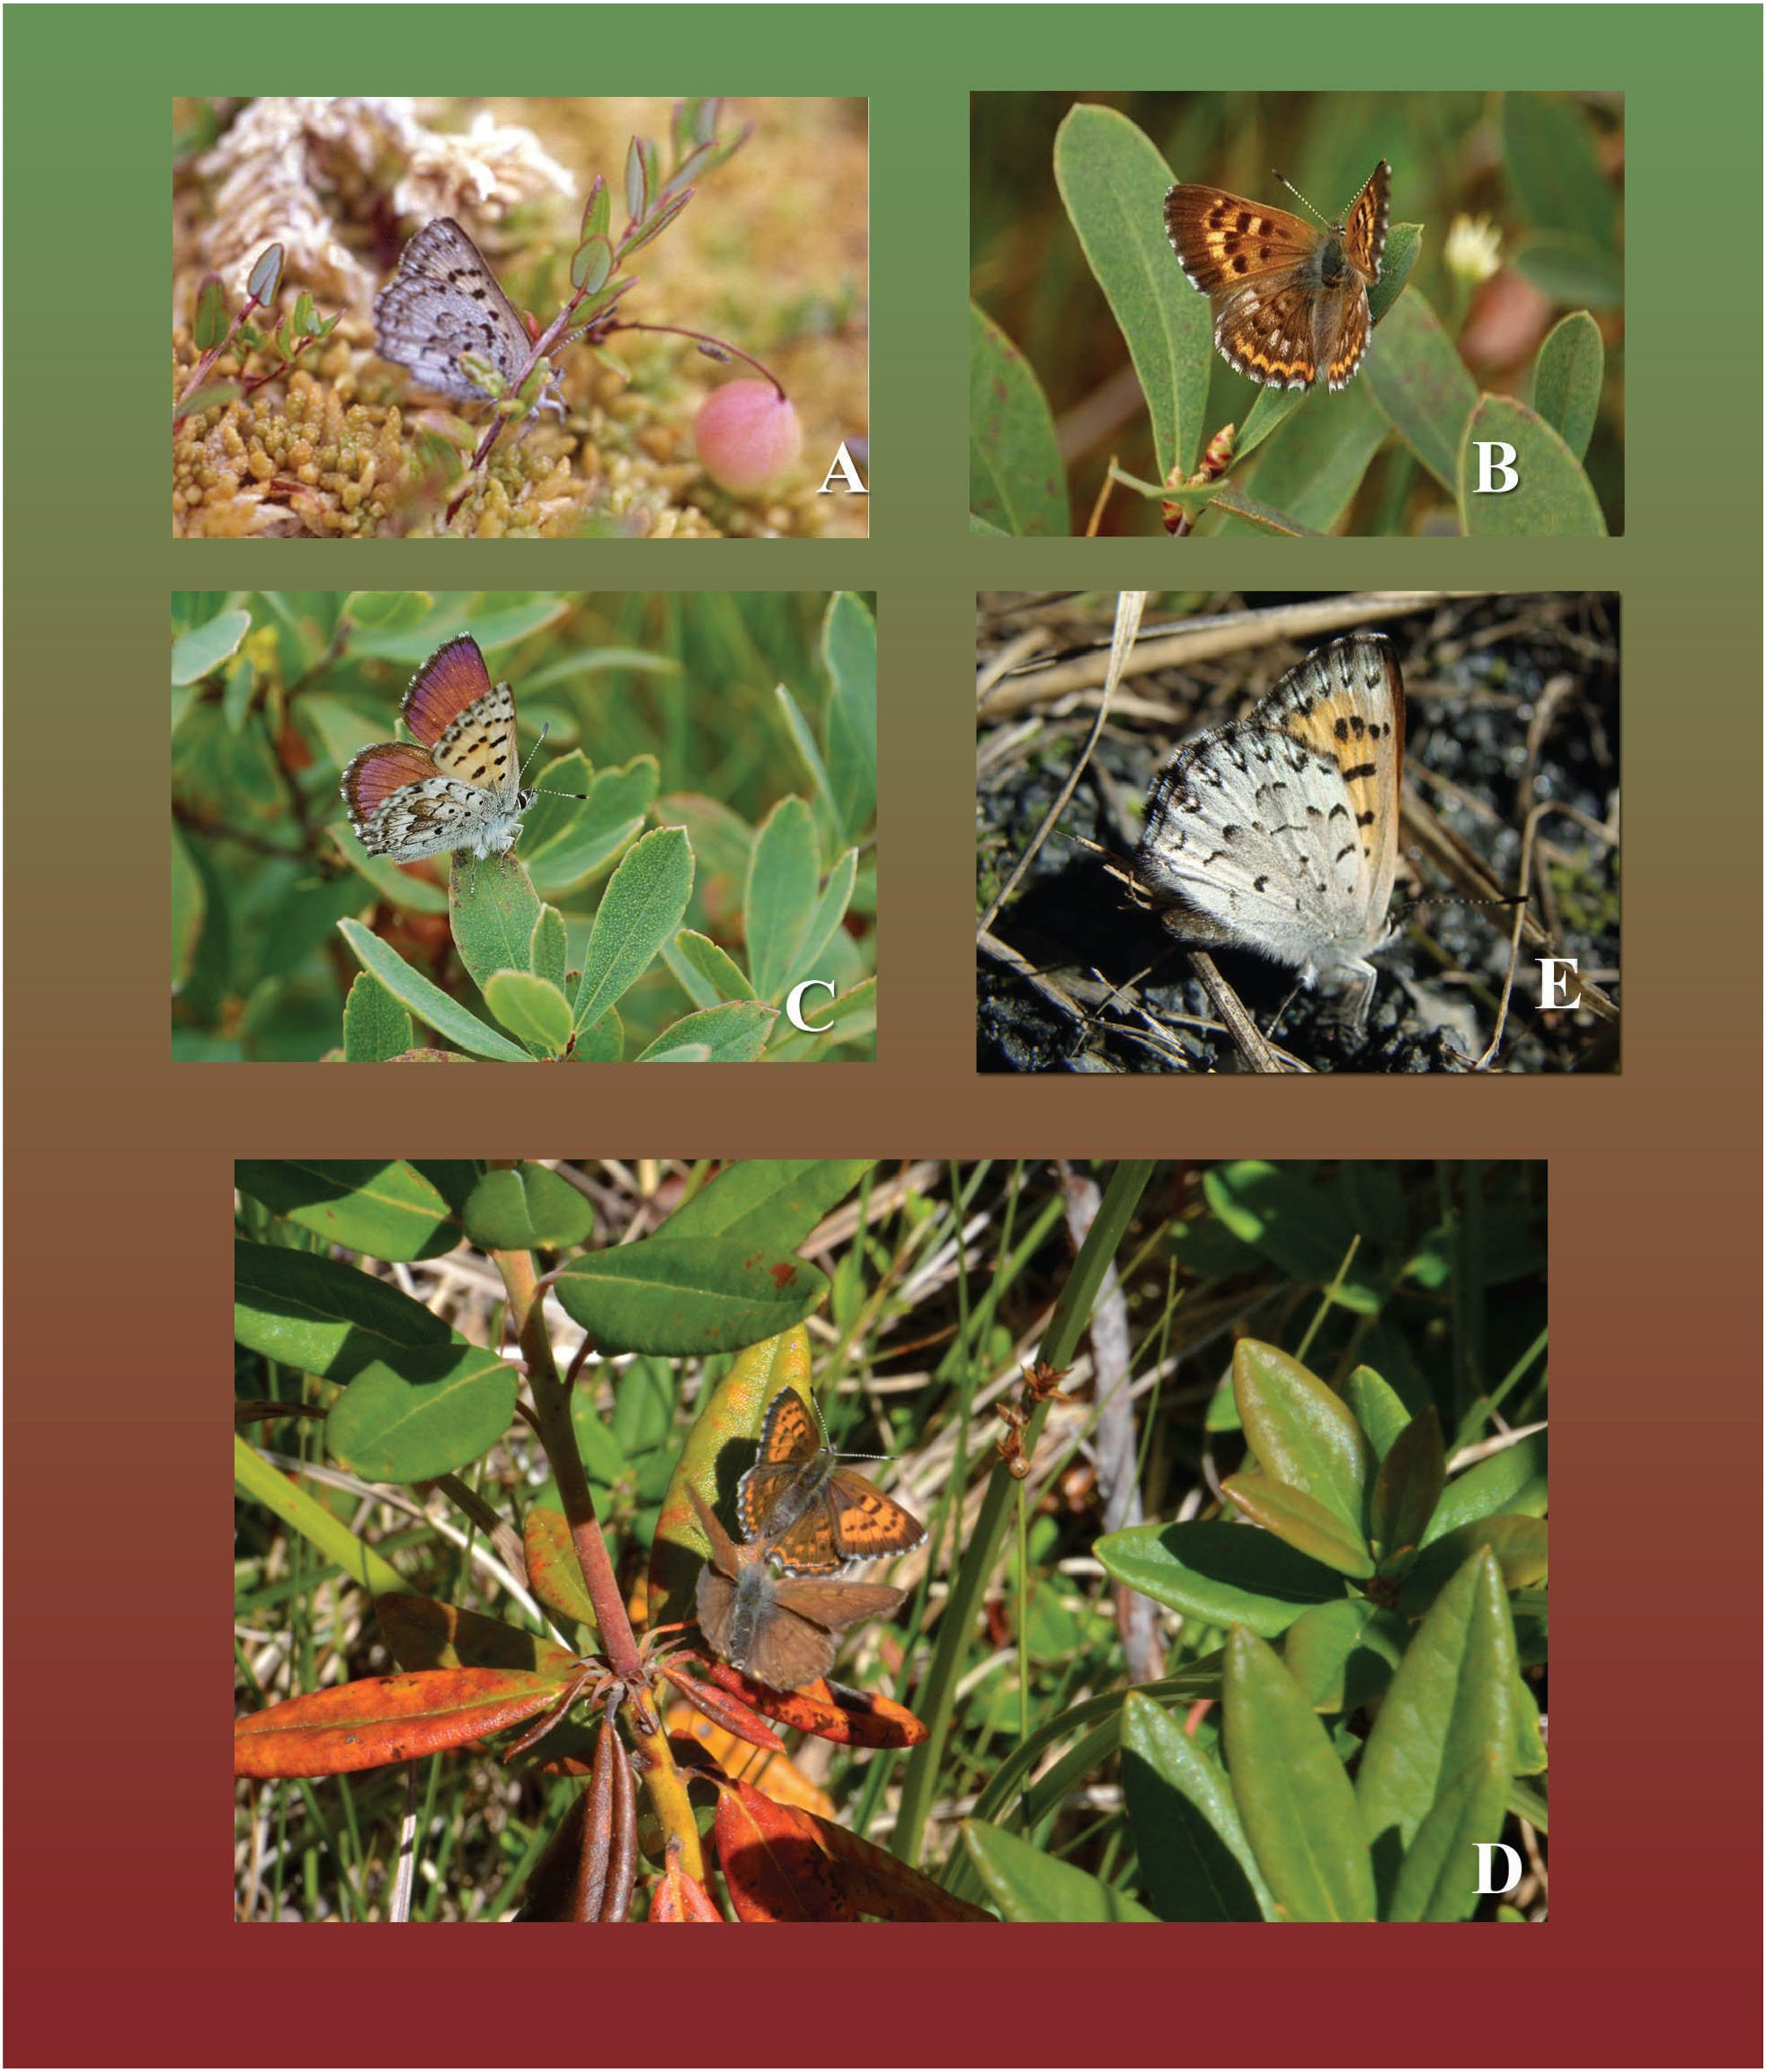 A Review of the Mariposa Copper (Lycaena (Epidemia) Mariposa